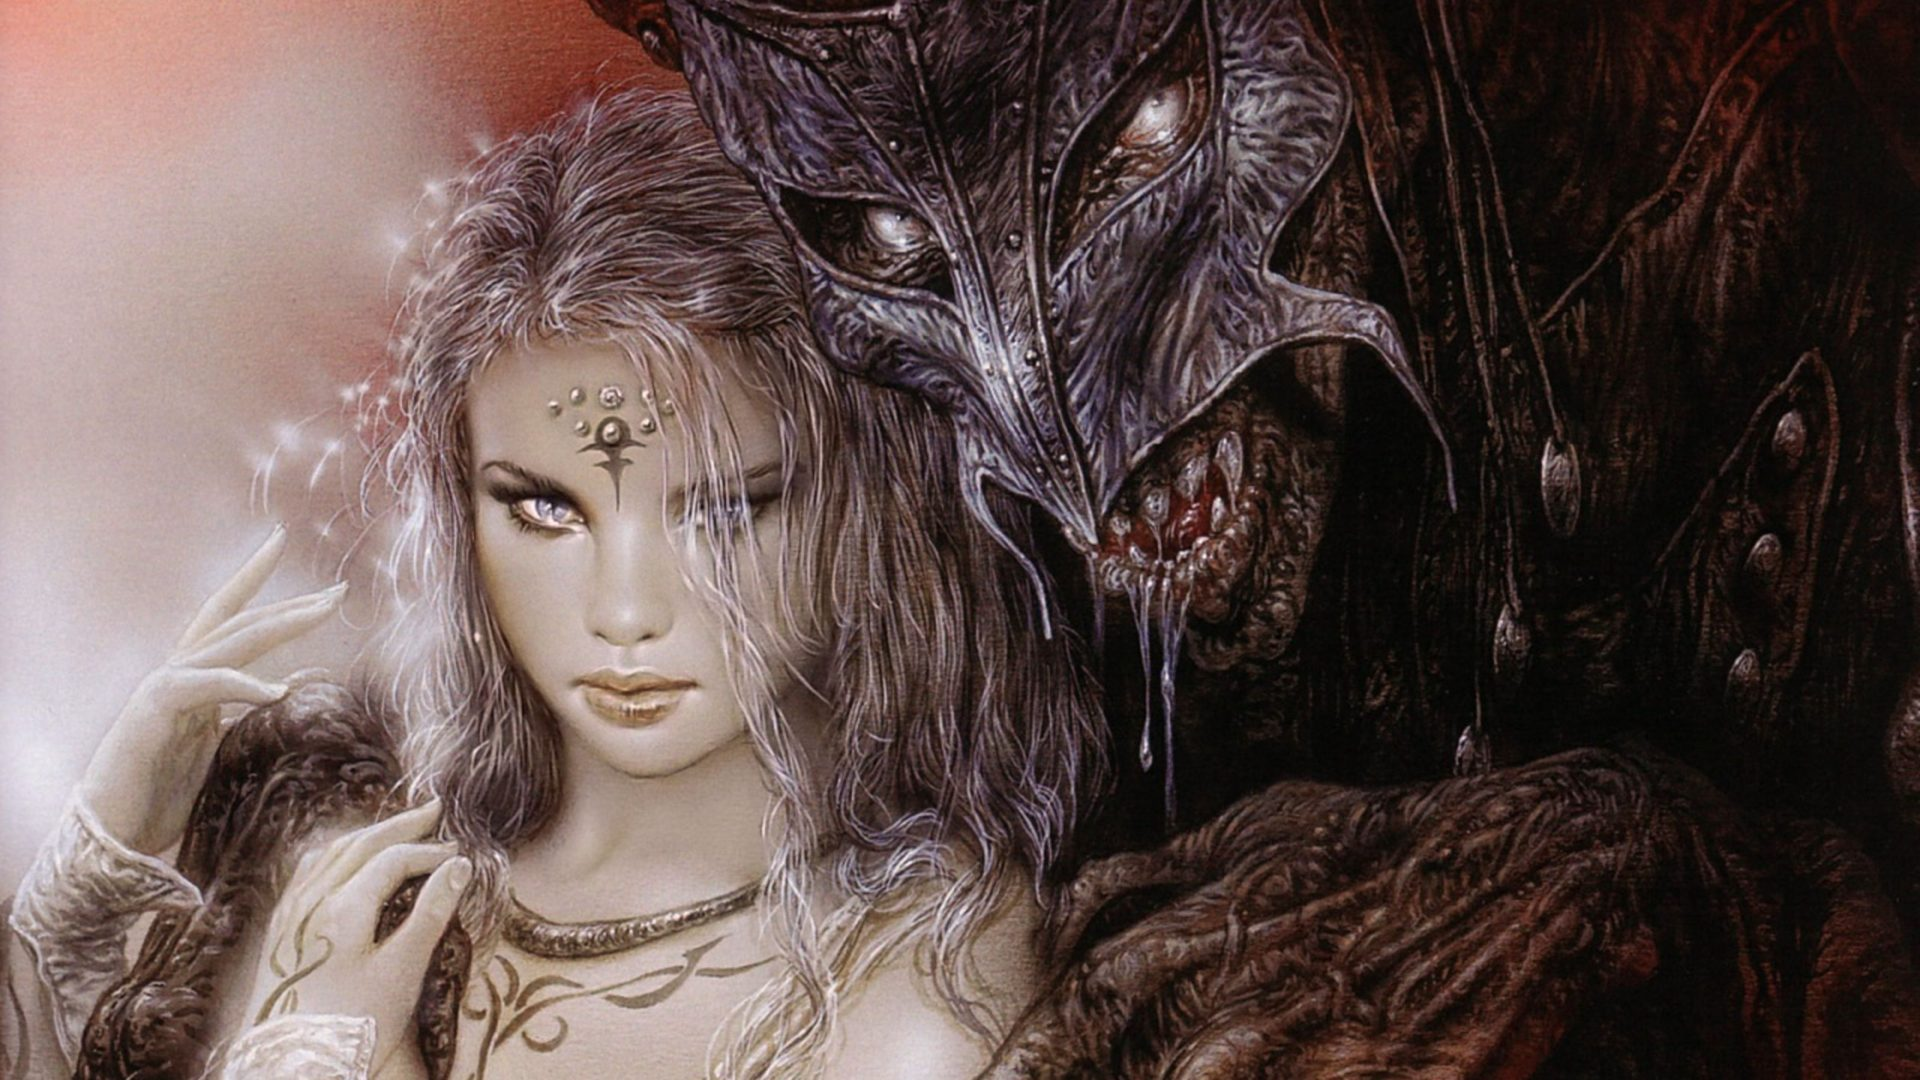 Beauty Girl Hd Wallpaper Download Luis Royo Fantasy Dark Horror Demon Women Art Mask Monster